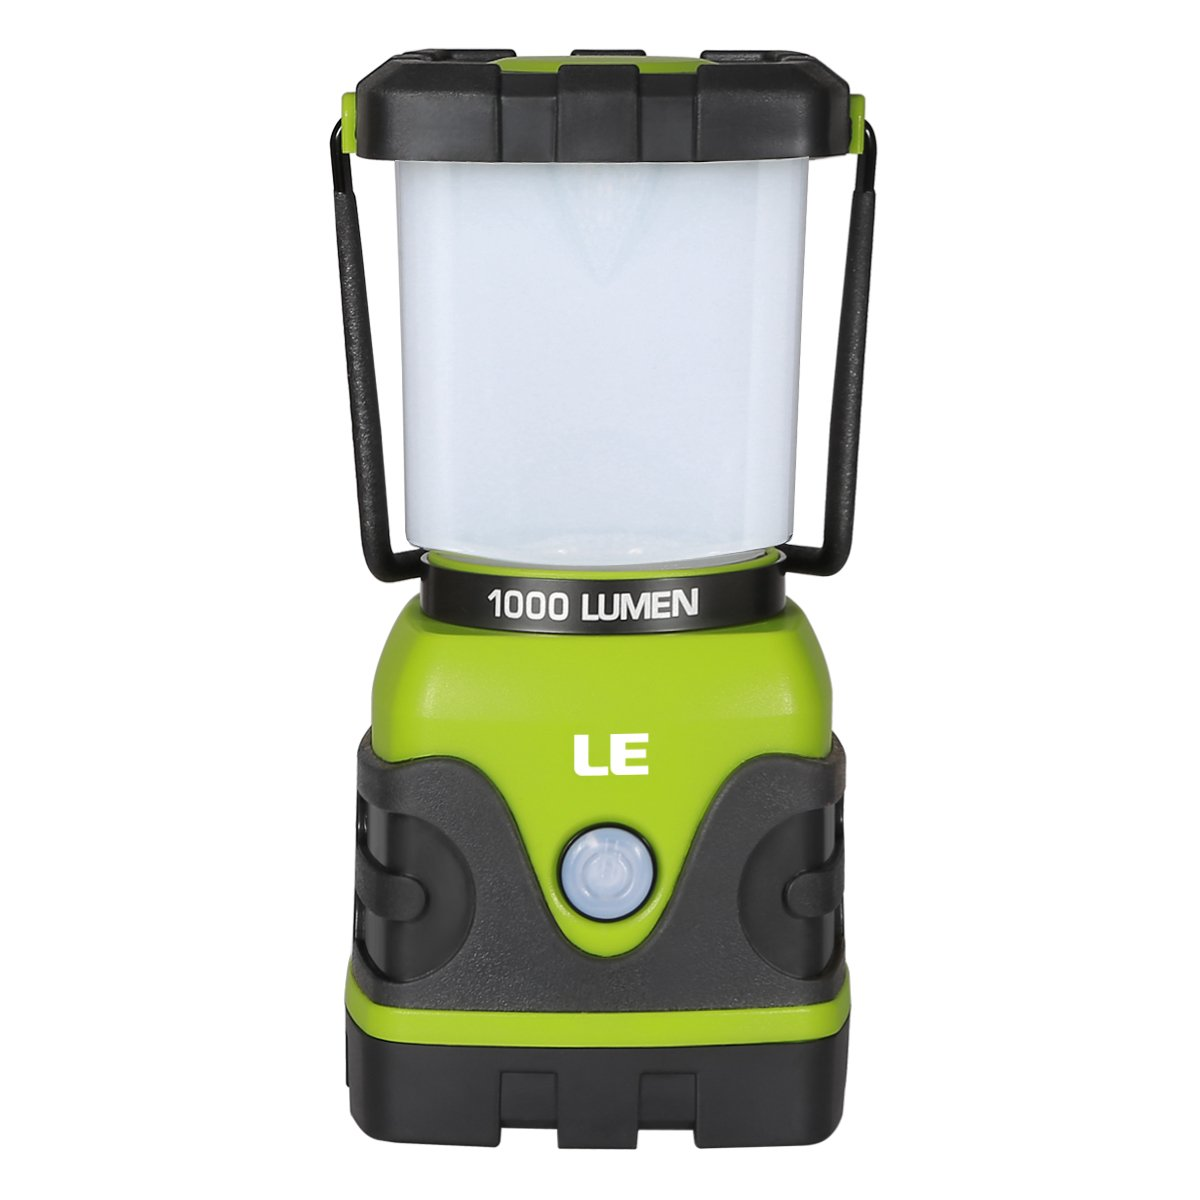 camping lantern led light tent lamp outdoor flashlight waterproof fishing torch ebay. Black Bedroom Furniture Sets. Home Design Ideas